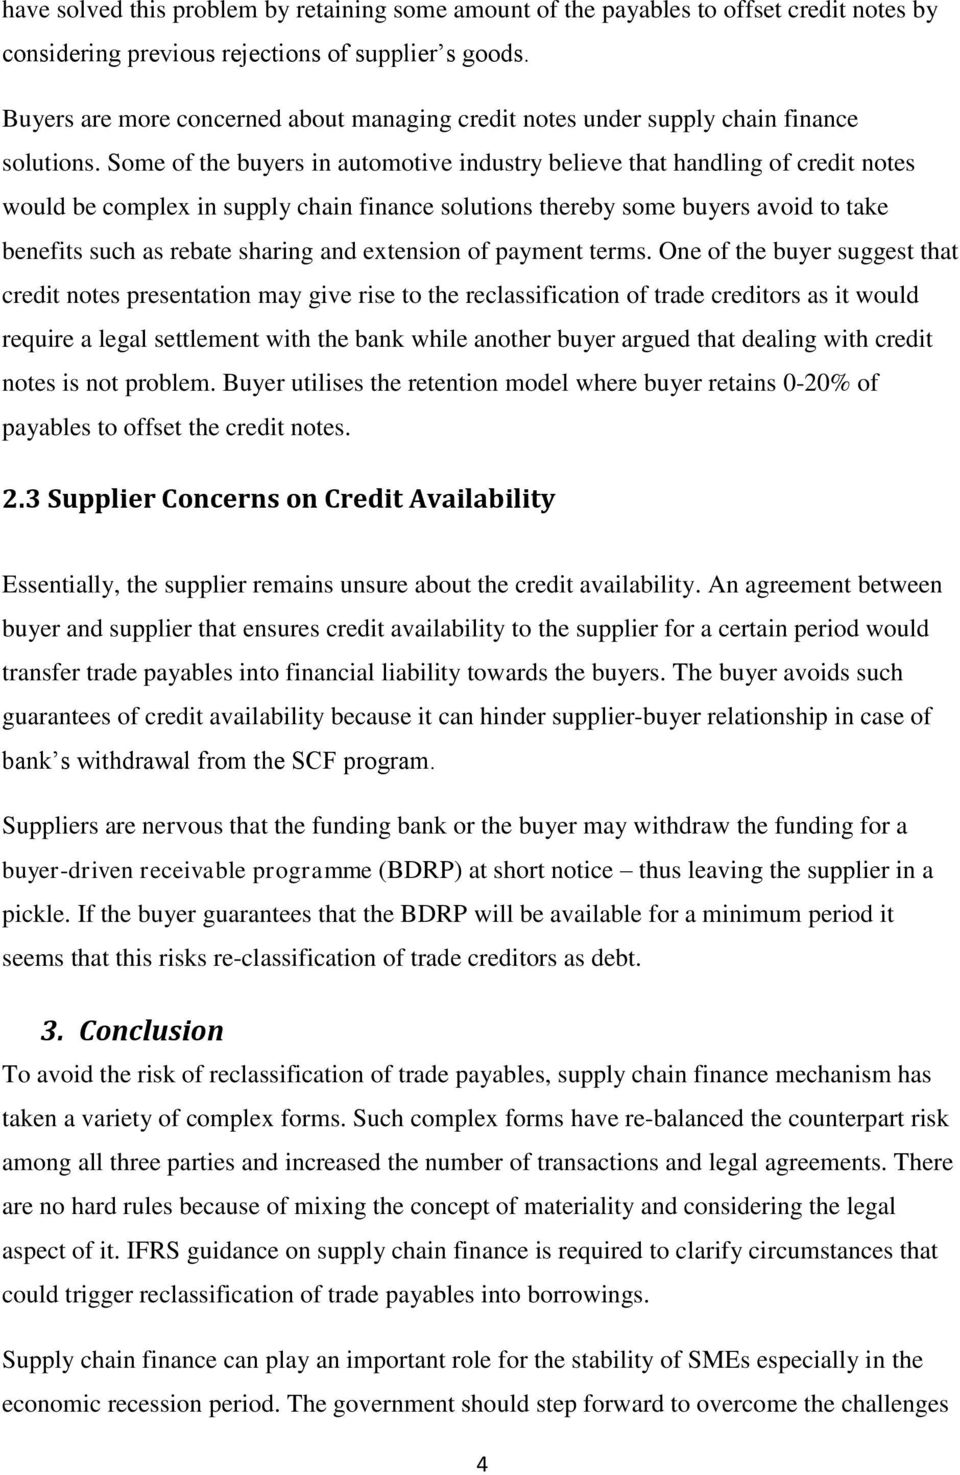 Some of the buyers in automotive industry believe that handling of credit notes would be complex in supply chain finance solutions thereby some buyers avoid to take benefits such as rebate sharing